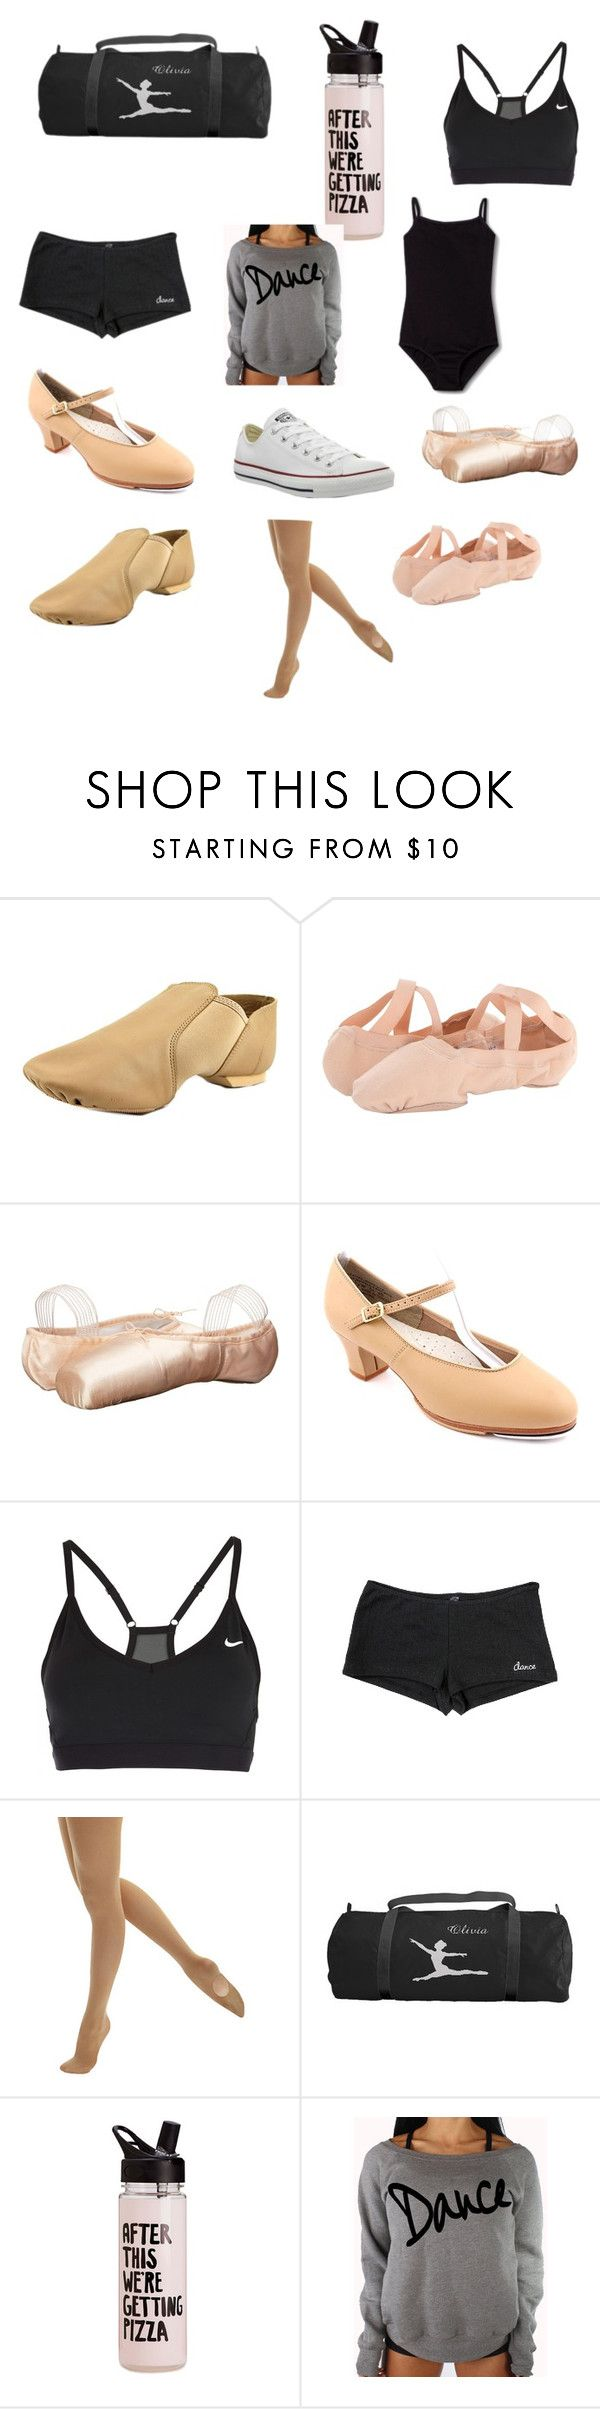 Dance Bag Essentials by montrosewilson ❤ liked on Polyvore featuring Capezio, Bloch, Sansha, NIKE, Danshuz and Converse